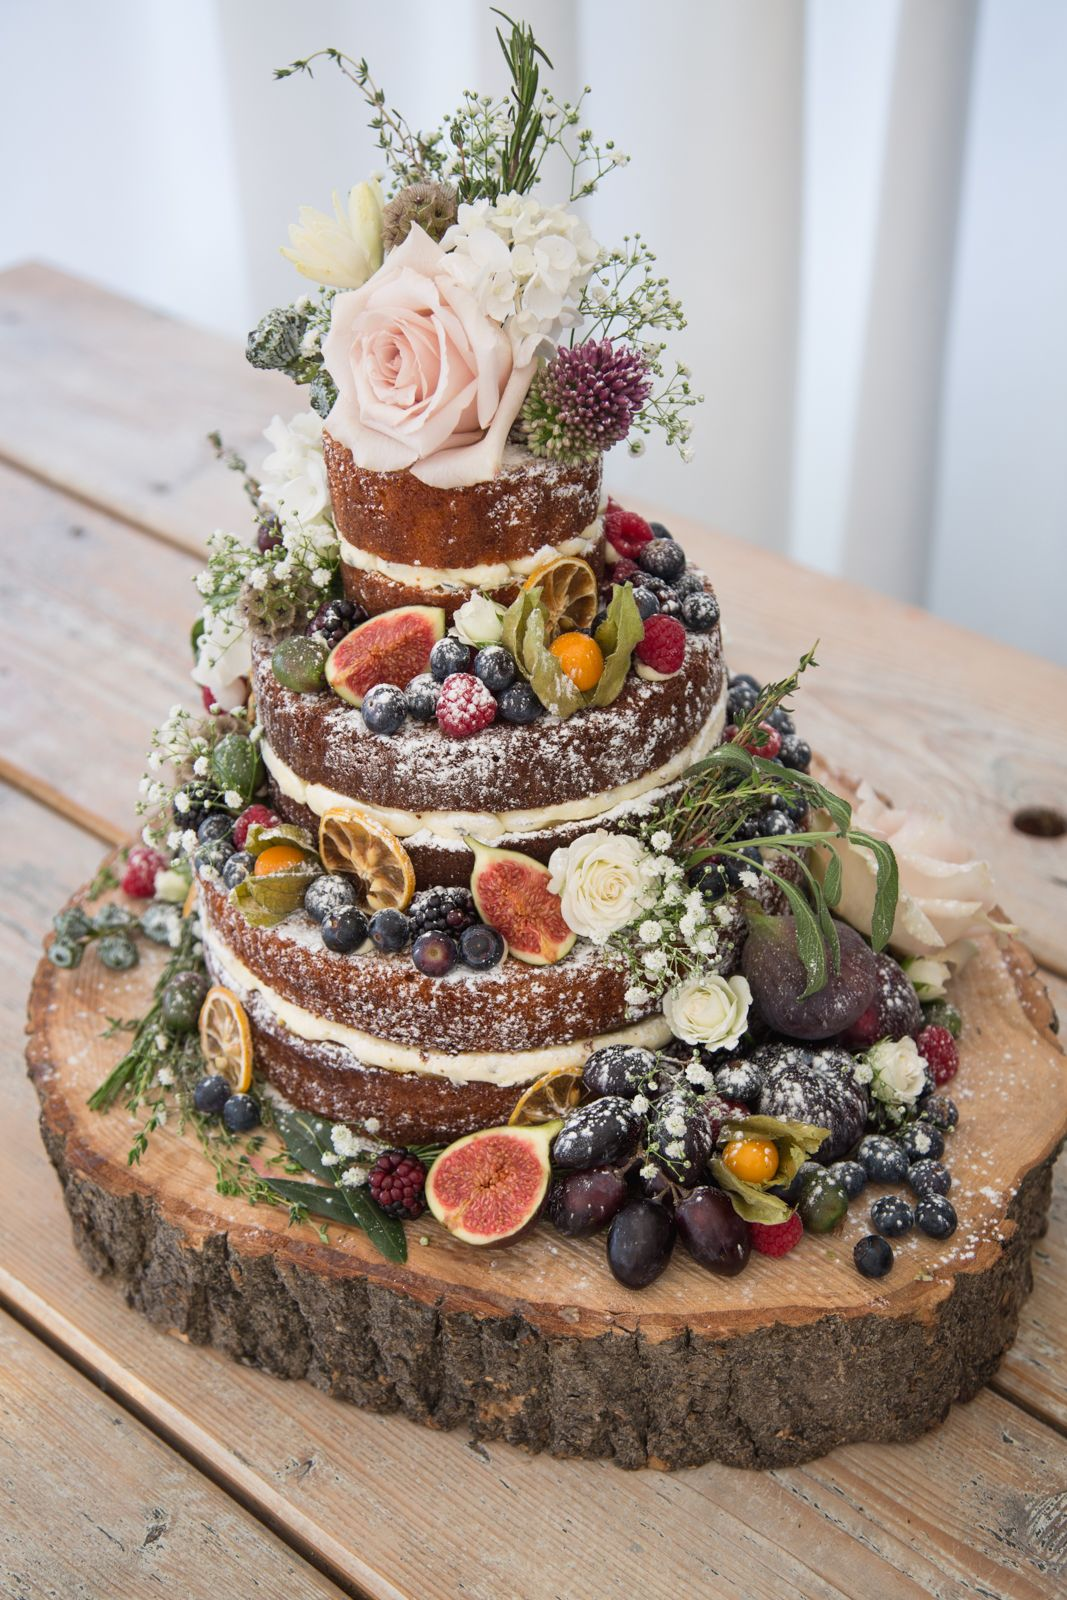 Wedding Cake Ideas A Guide to Tiers, Portions, Icing and